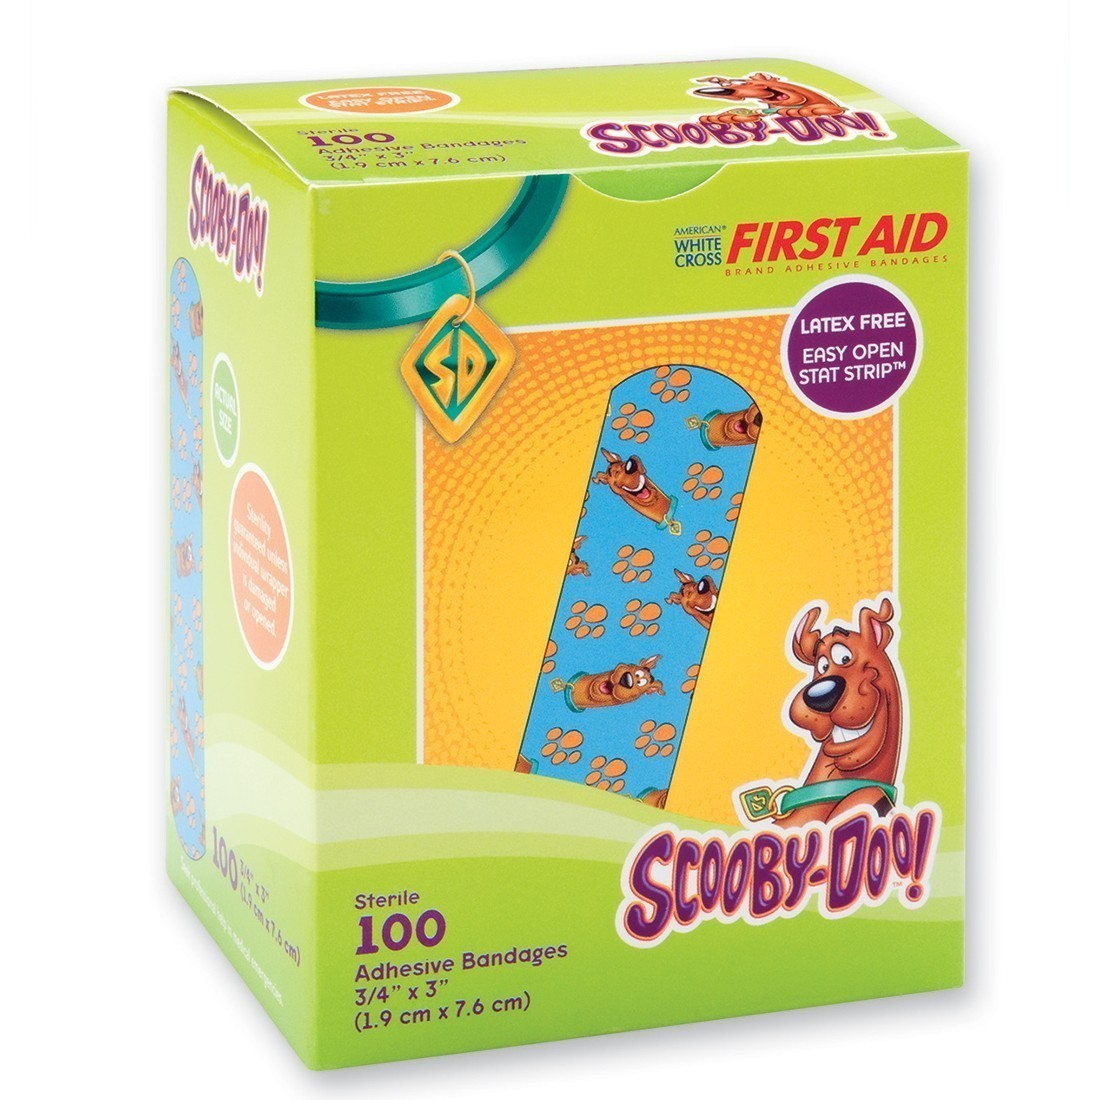 First Aid Scooby-Doo™ Bandages [image]